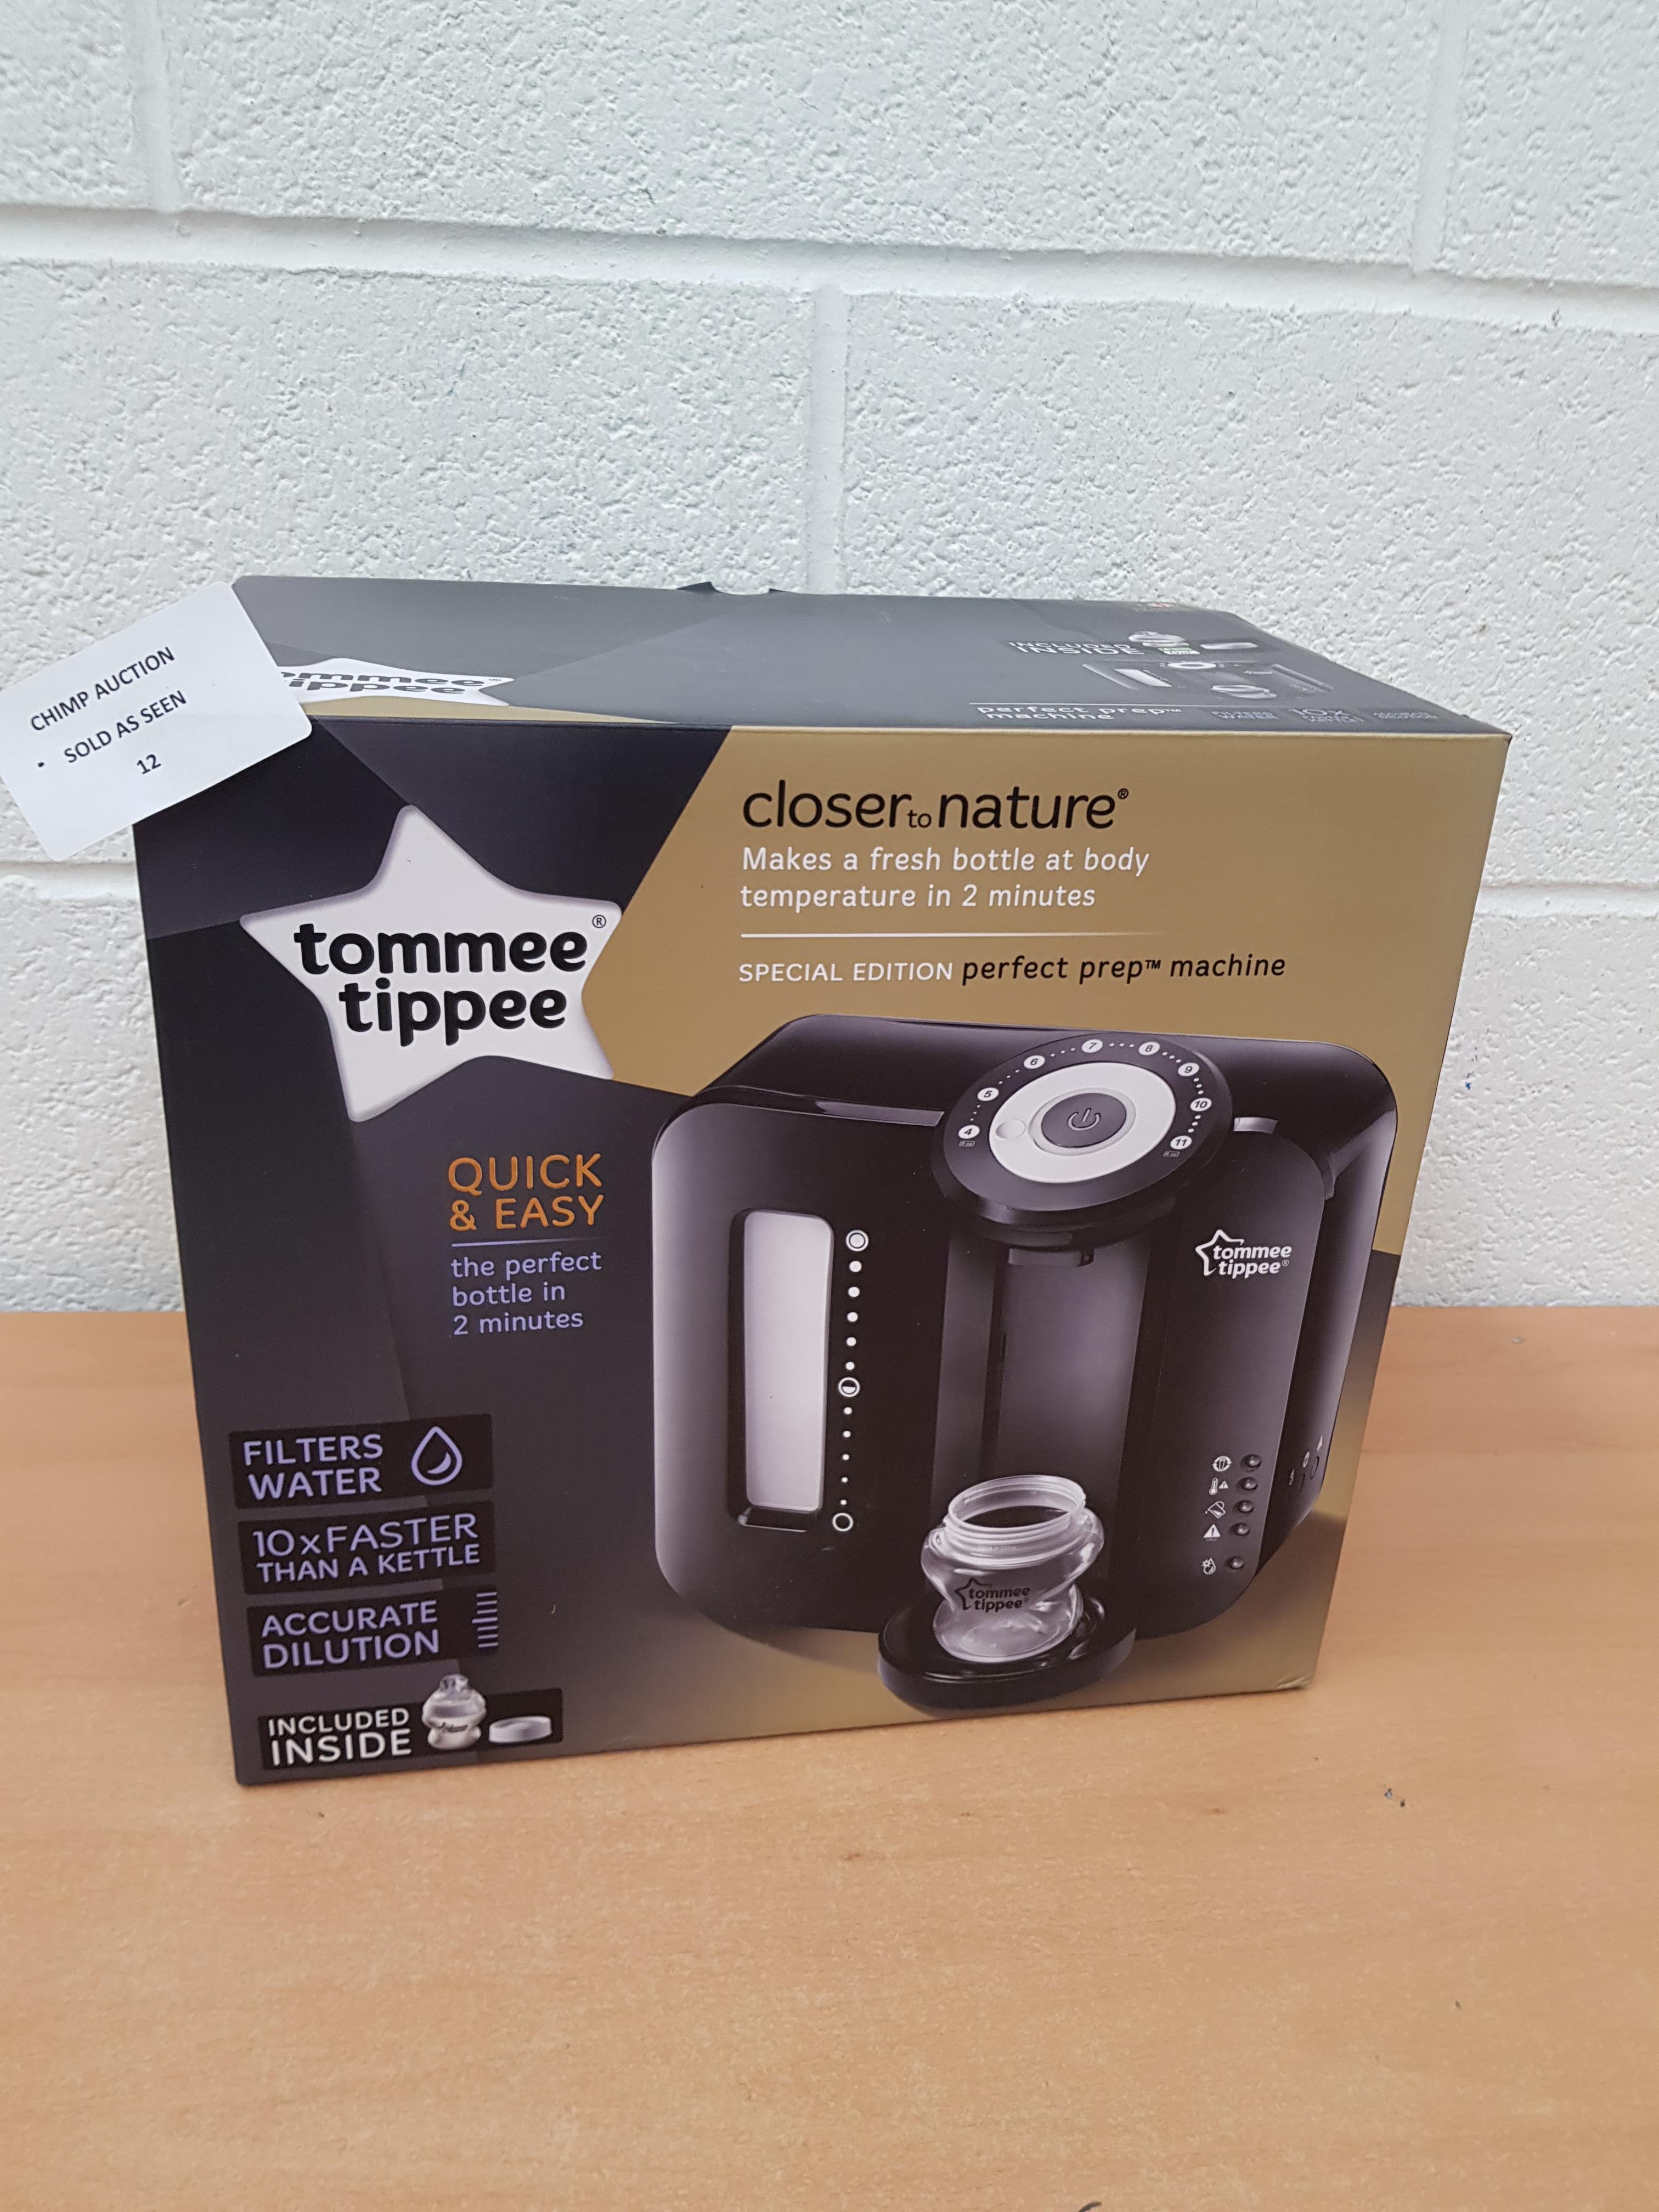 Lot 12 - Tommee Tippee Perfect Prep Machine Special edition RRP £129.99.